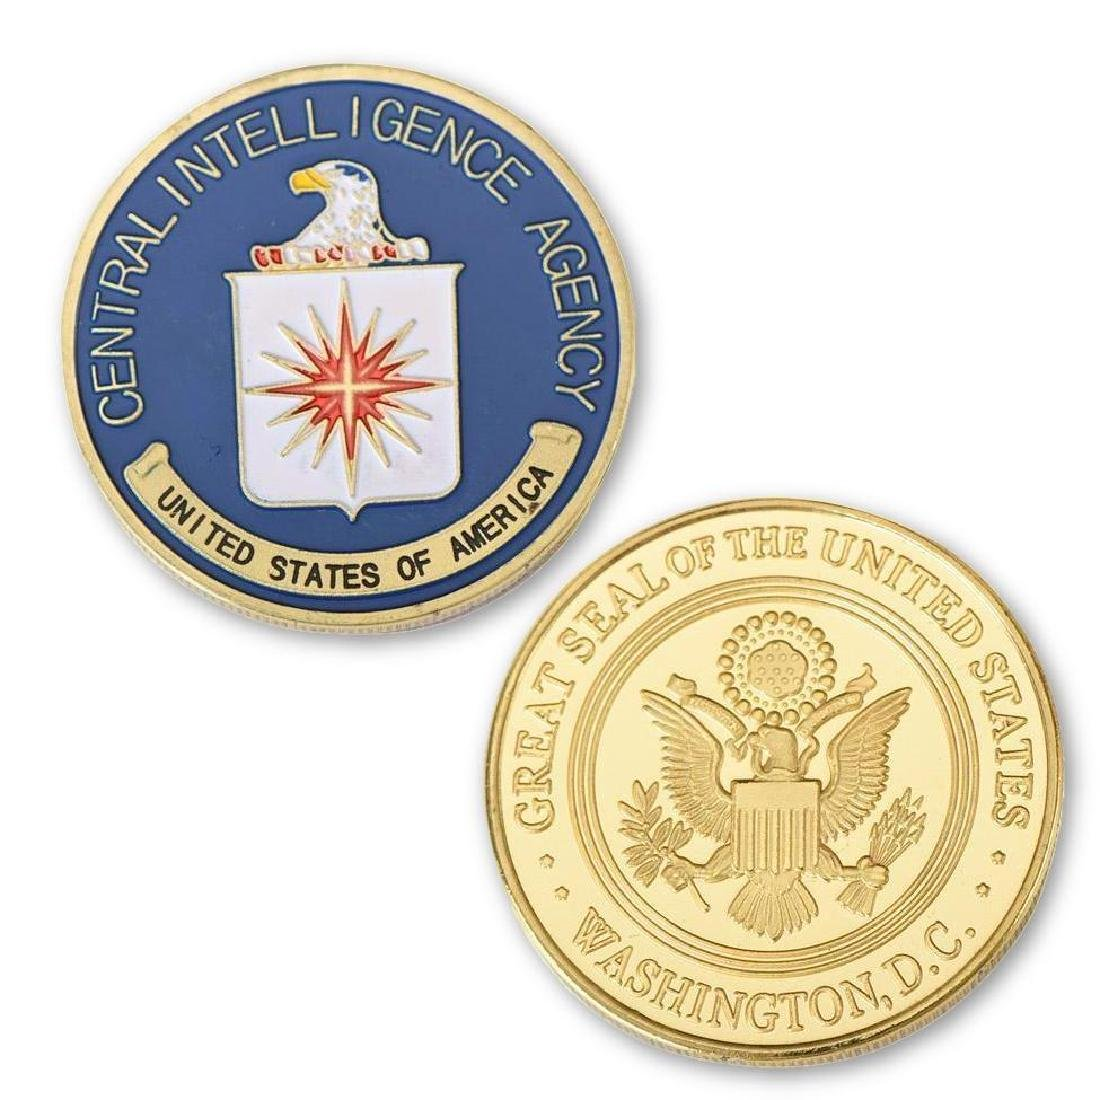 USA CIA Colored Gold Clad Challenge Coin